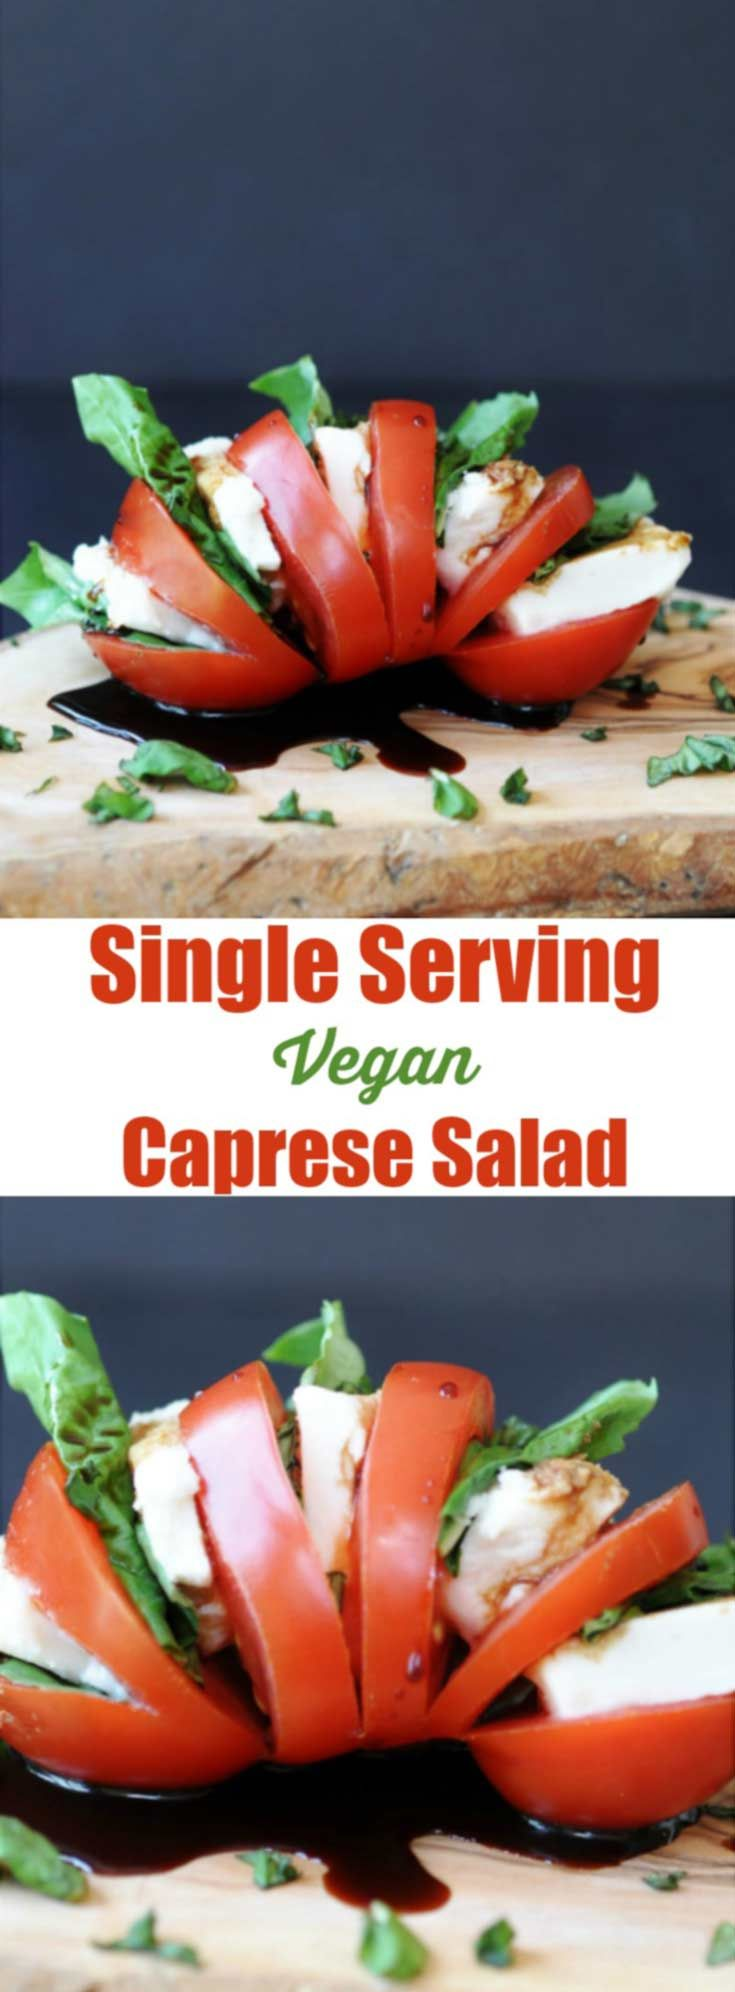 Single Serving Vegan Caprese Salad! This delicious and simple recipe makes the perfect lunch or appetizer for one. All you need is a tomato, some vegan mozzarella, basil, and balsamic vinegar. www.veganosity.com